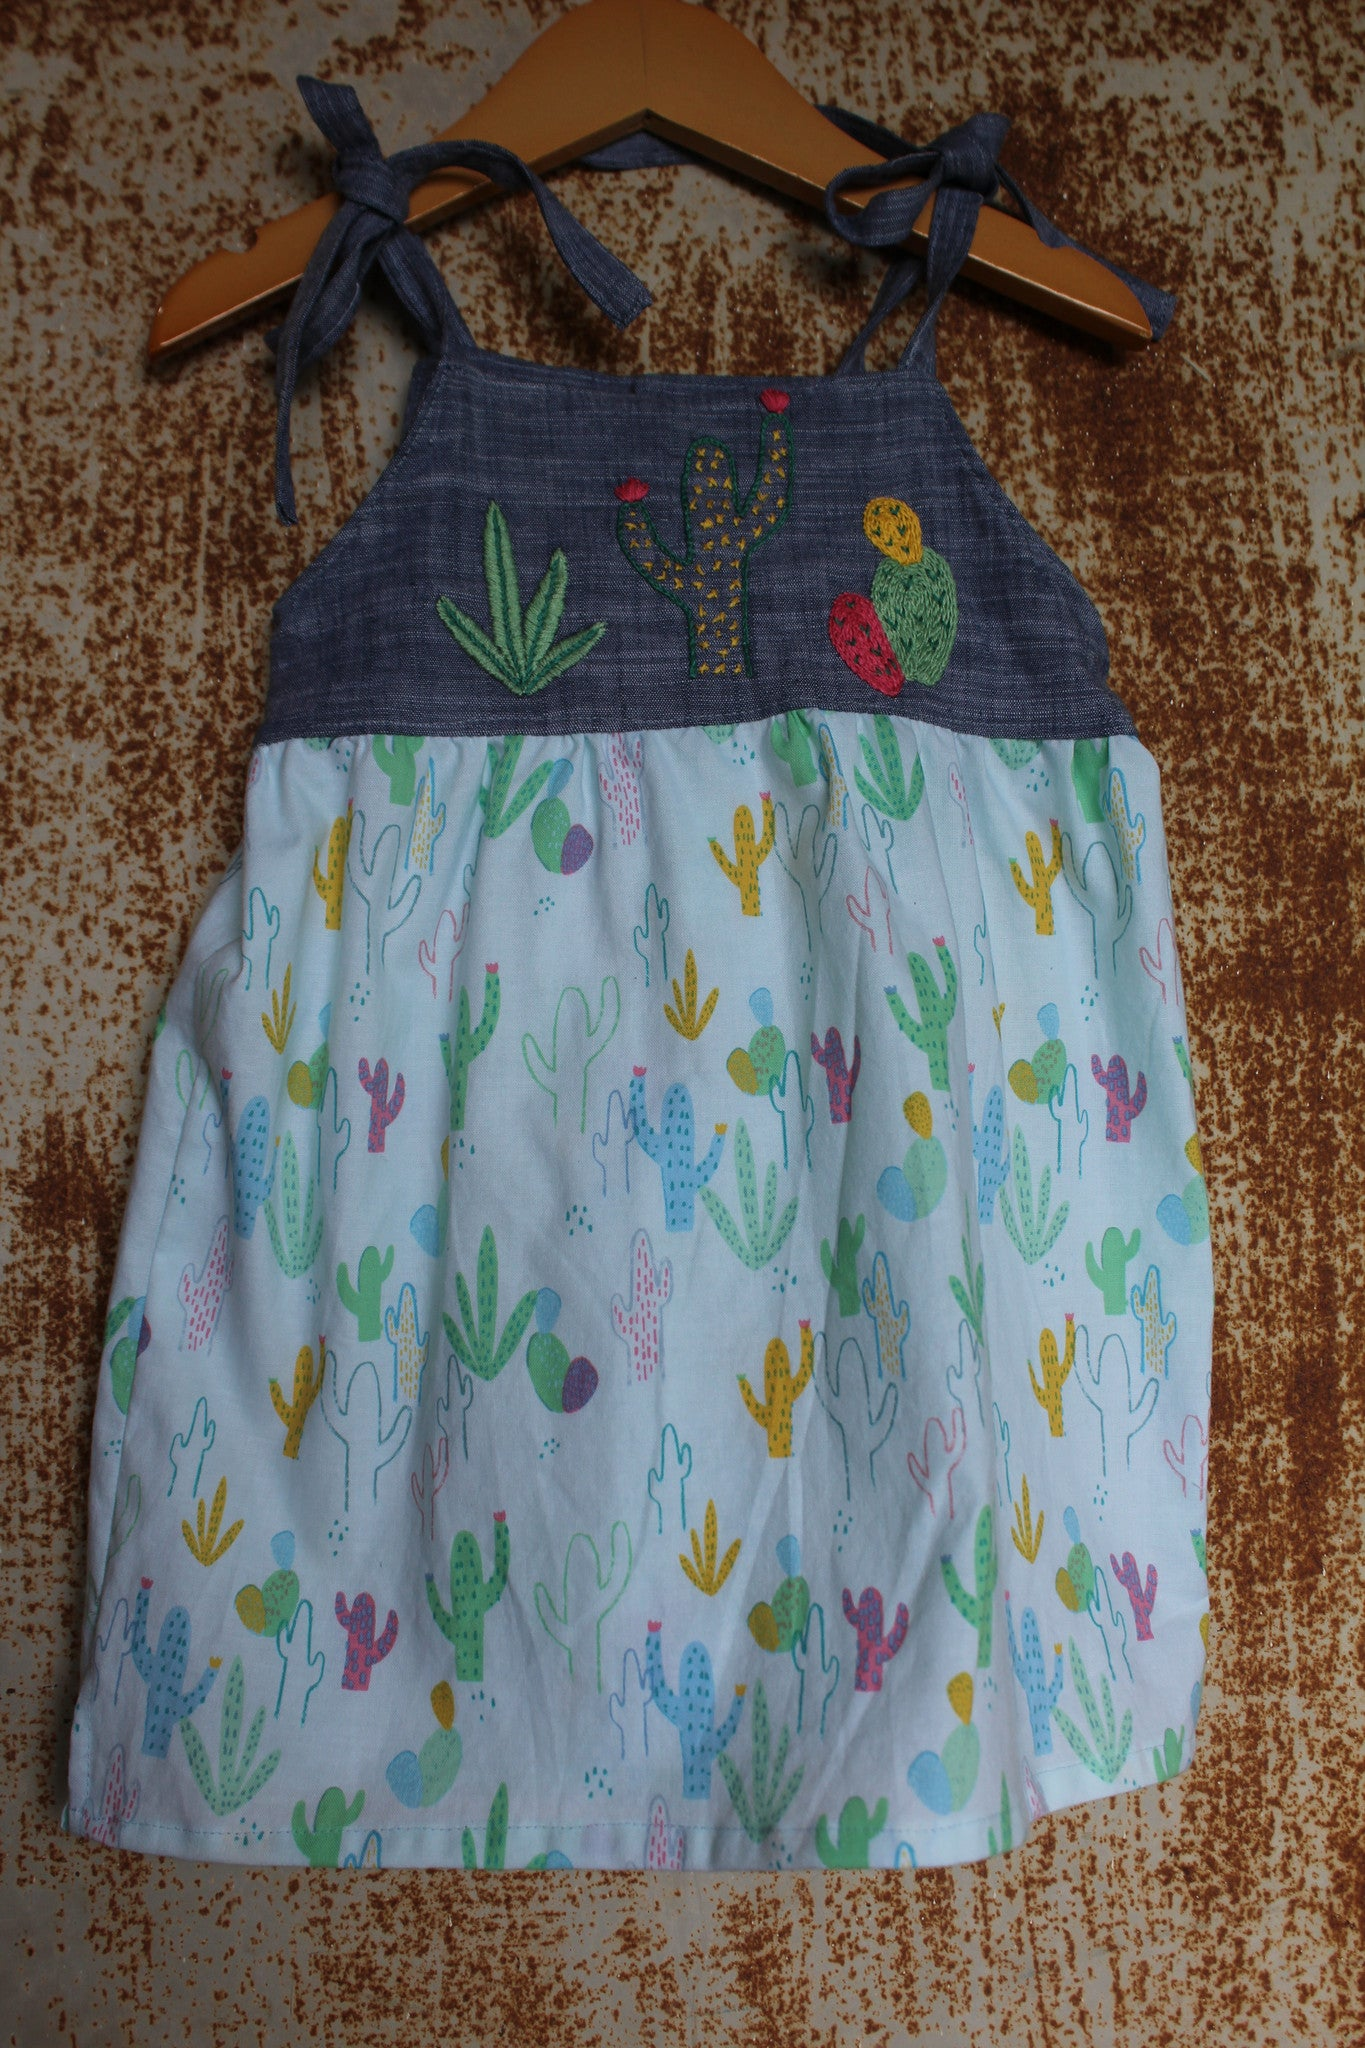 """Aloe From the Other Side"" - Spaghetti Strap w/ Sash on Cactus Print - Size 12-18m"